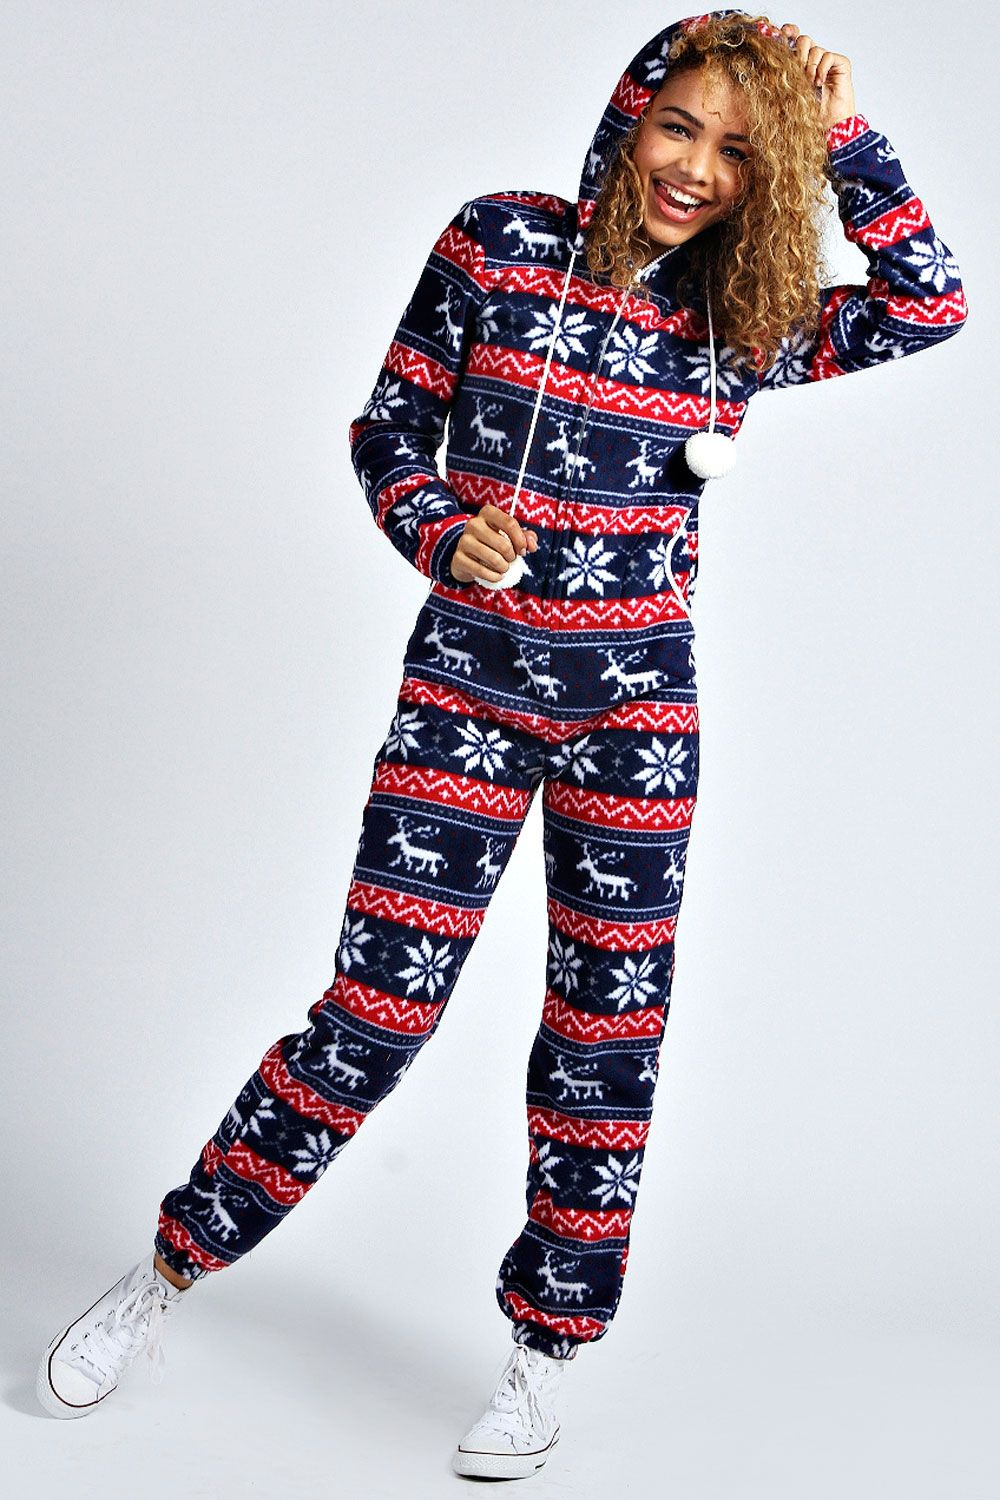 Hooded Pom Pom Onesie boohoo Ireland Cool outfits